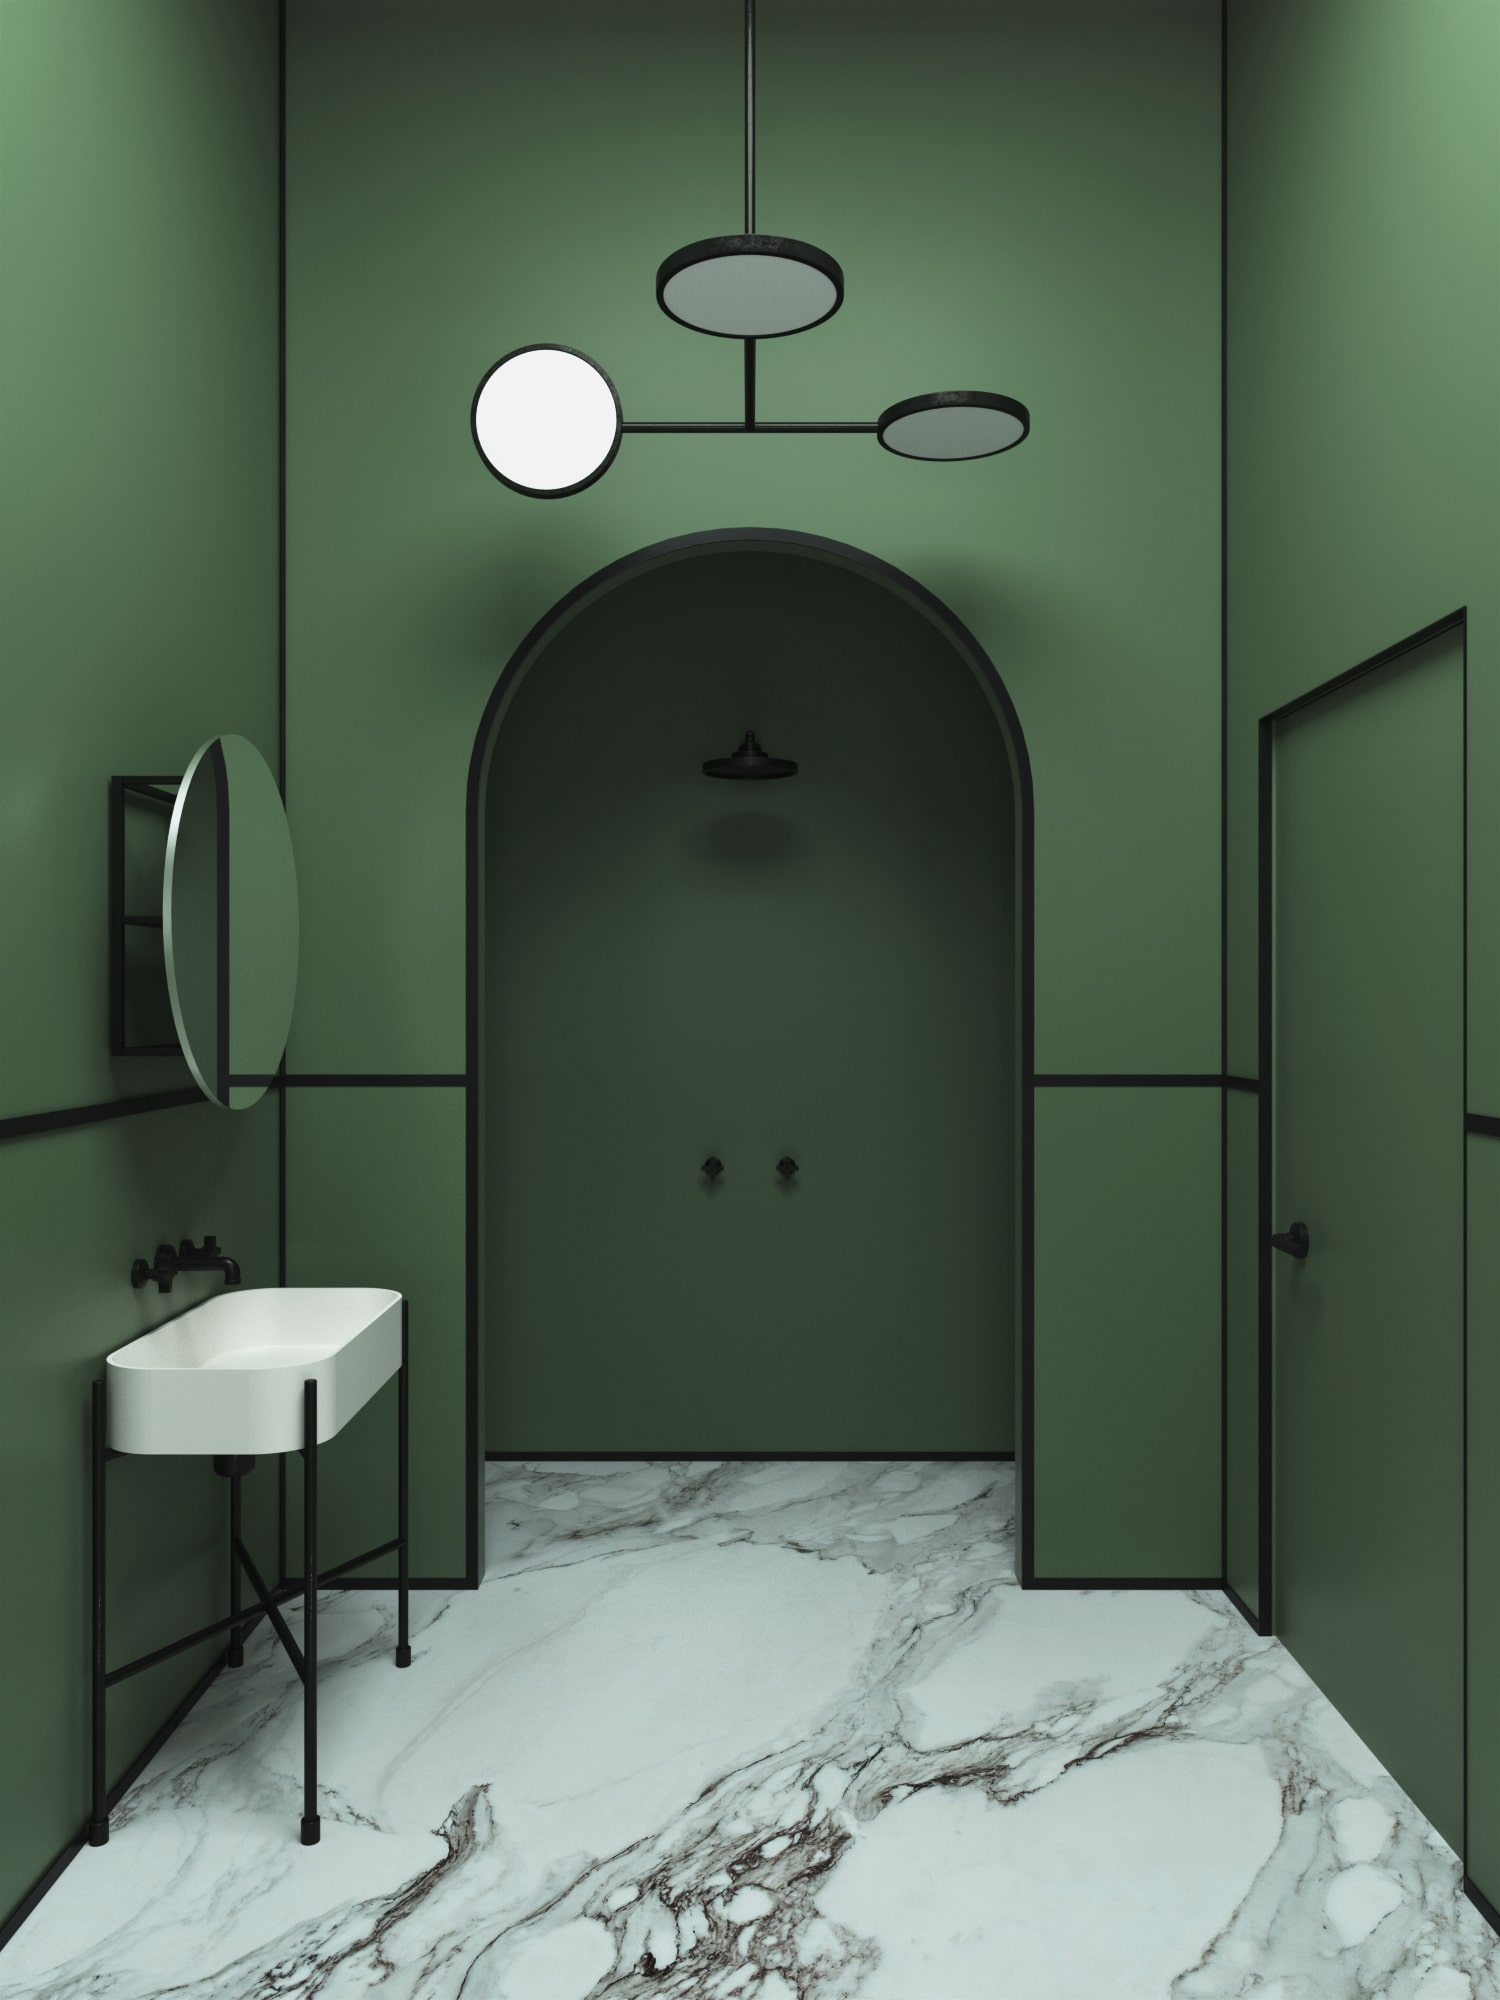 Olive_Bathroom_Linar_A1-min